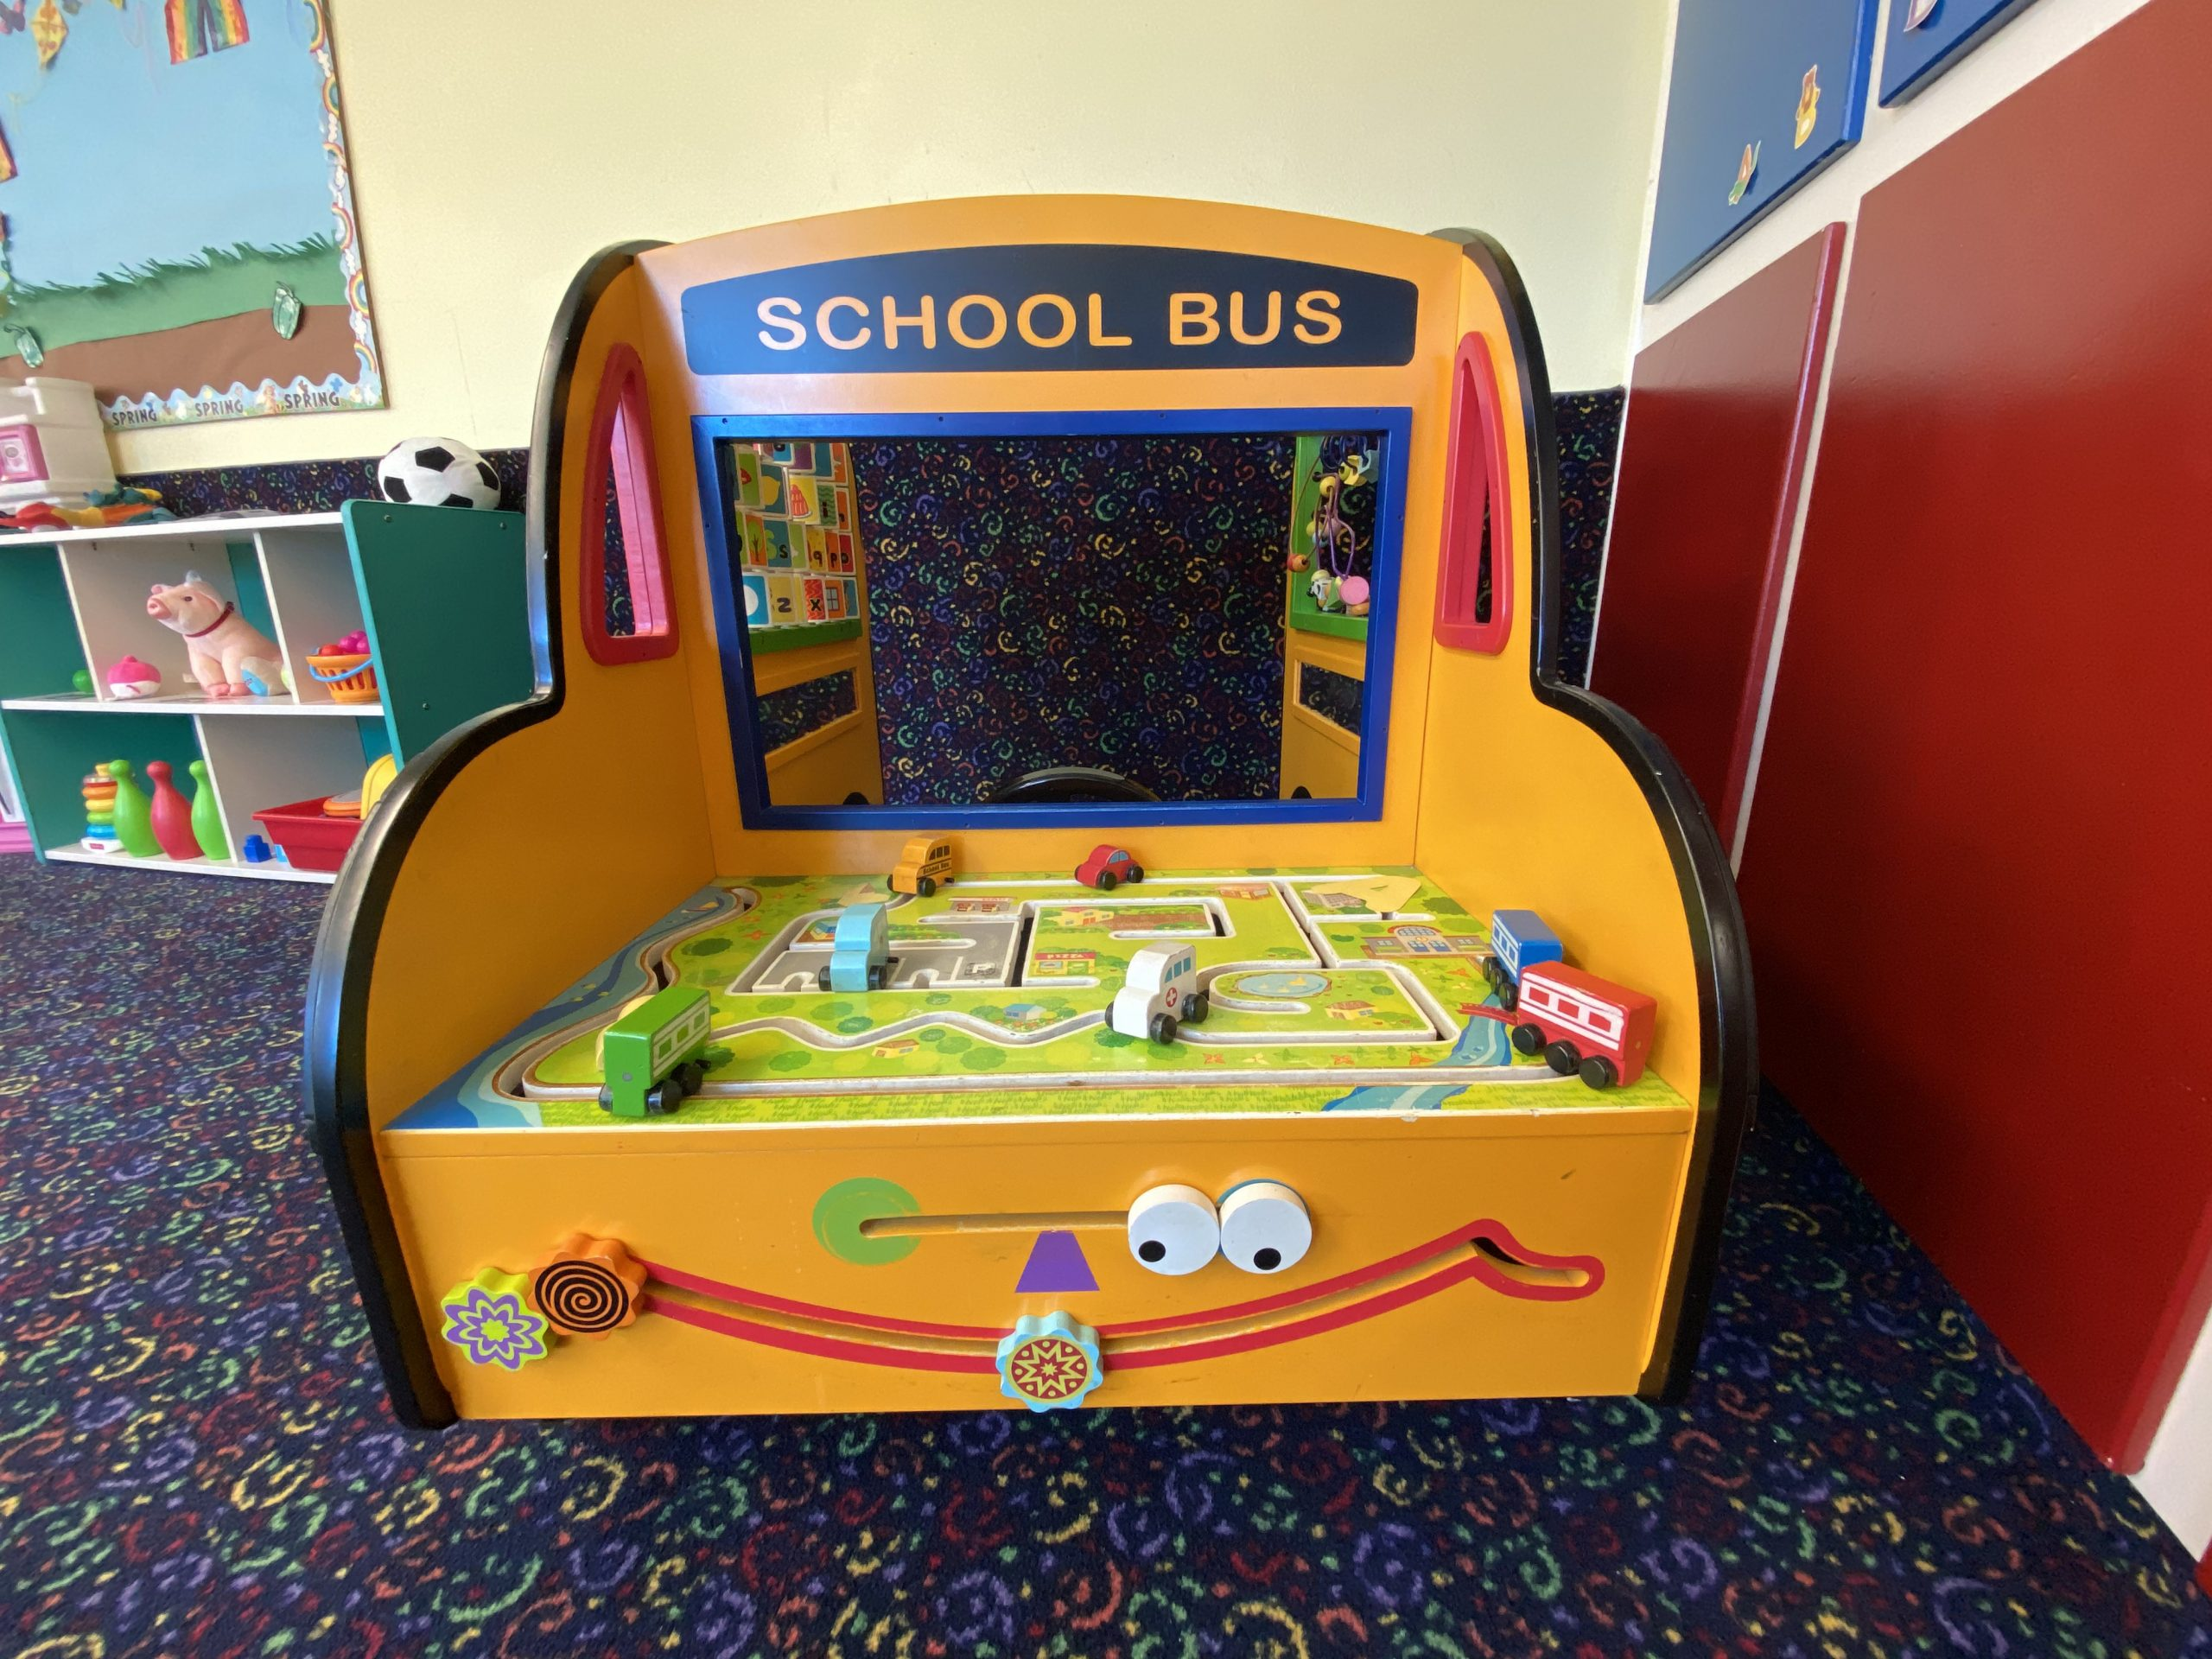 School bus toy for toddlers